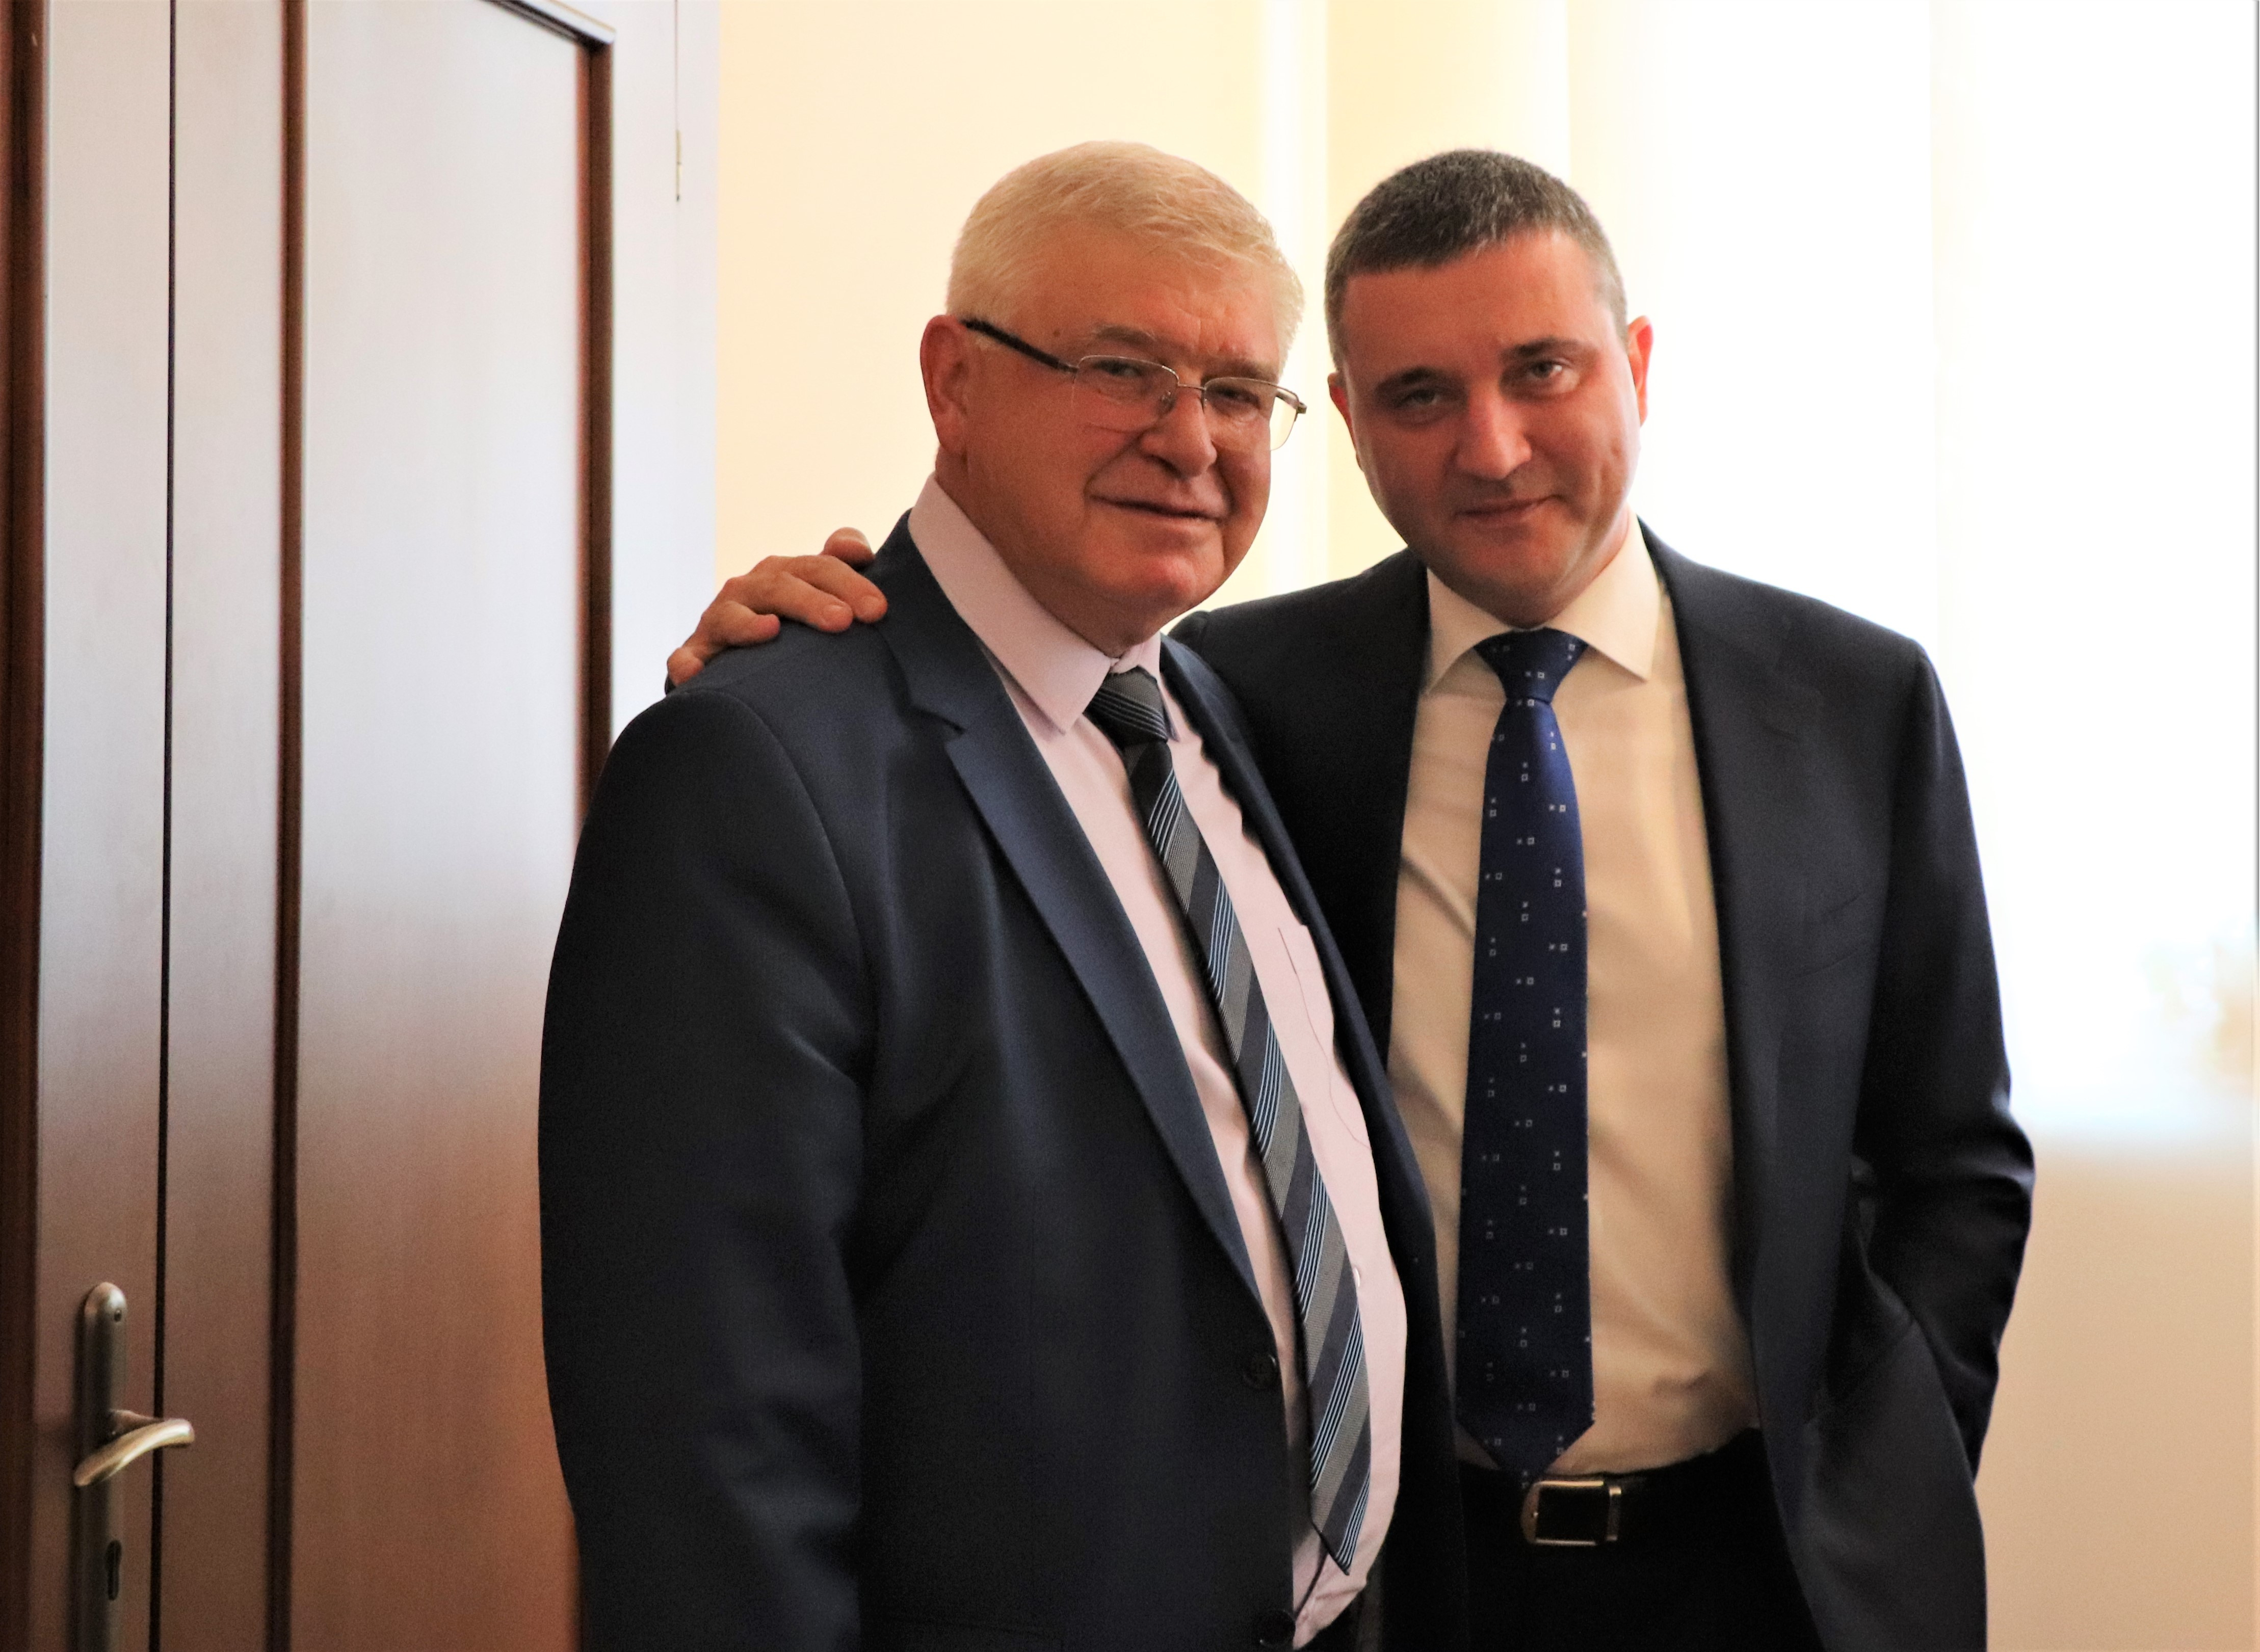 Minister of Finance Kiril Ananiev and the former Minister of Finance Vladislav Goranov